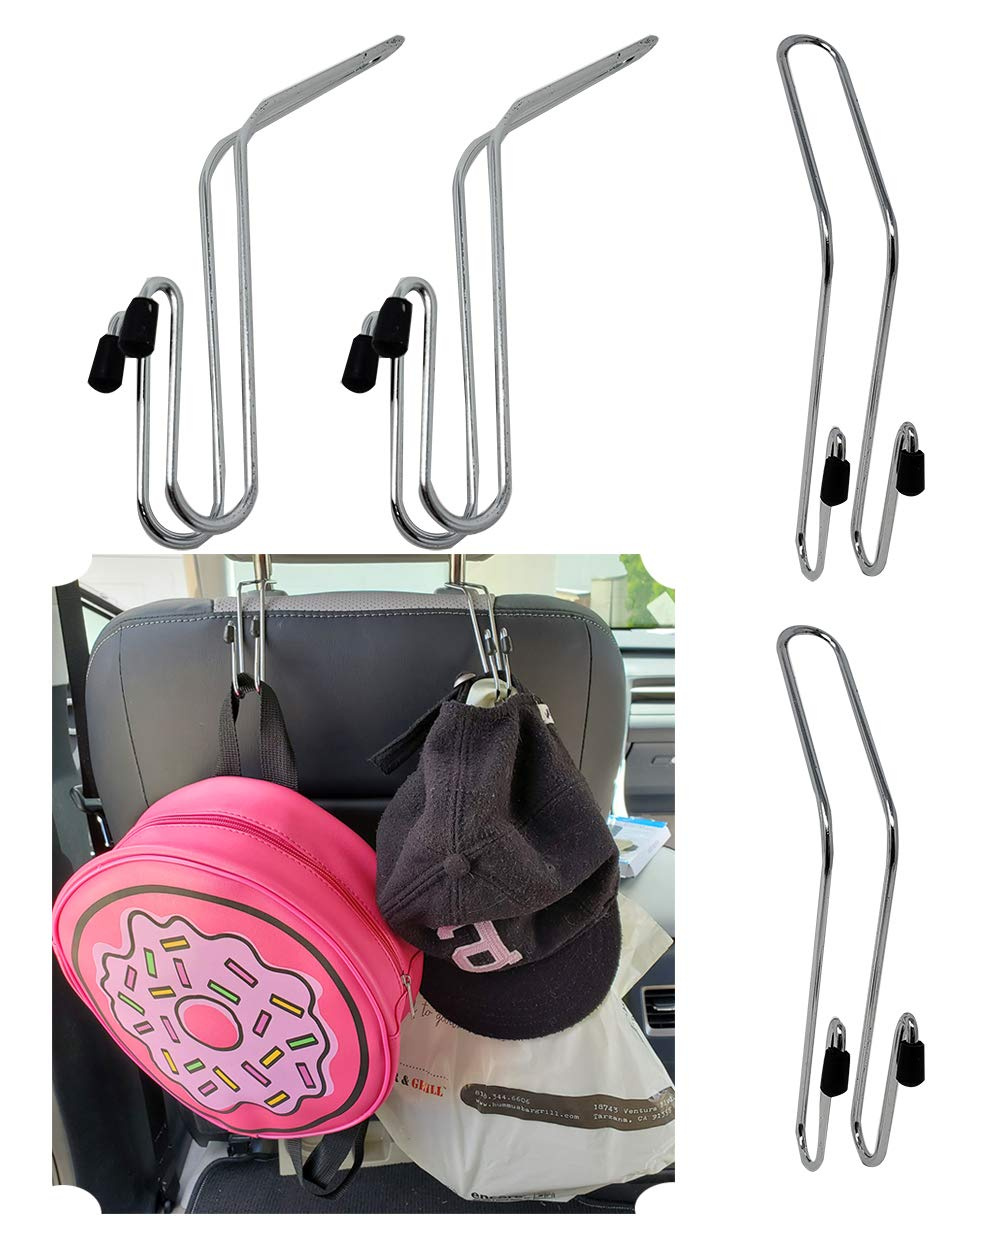 4 Pack Car Auto Mini Hook Hanger Headrest Backseat Multi-Purpose for Bags and Handbags car Hooks for Grocery Bags /& Purse